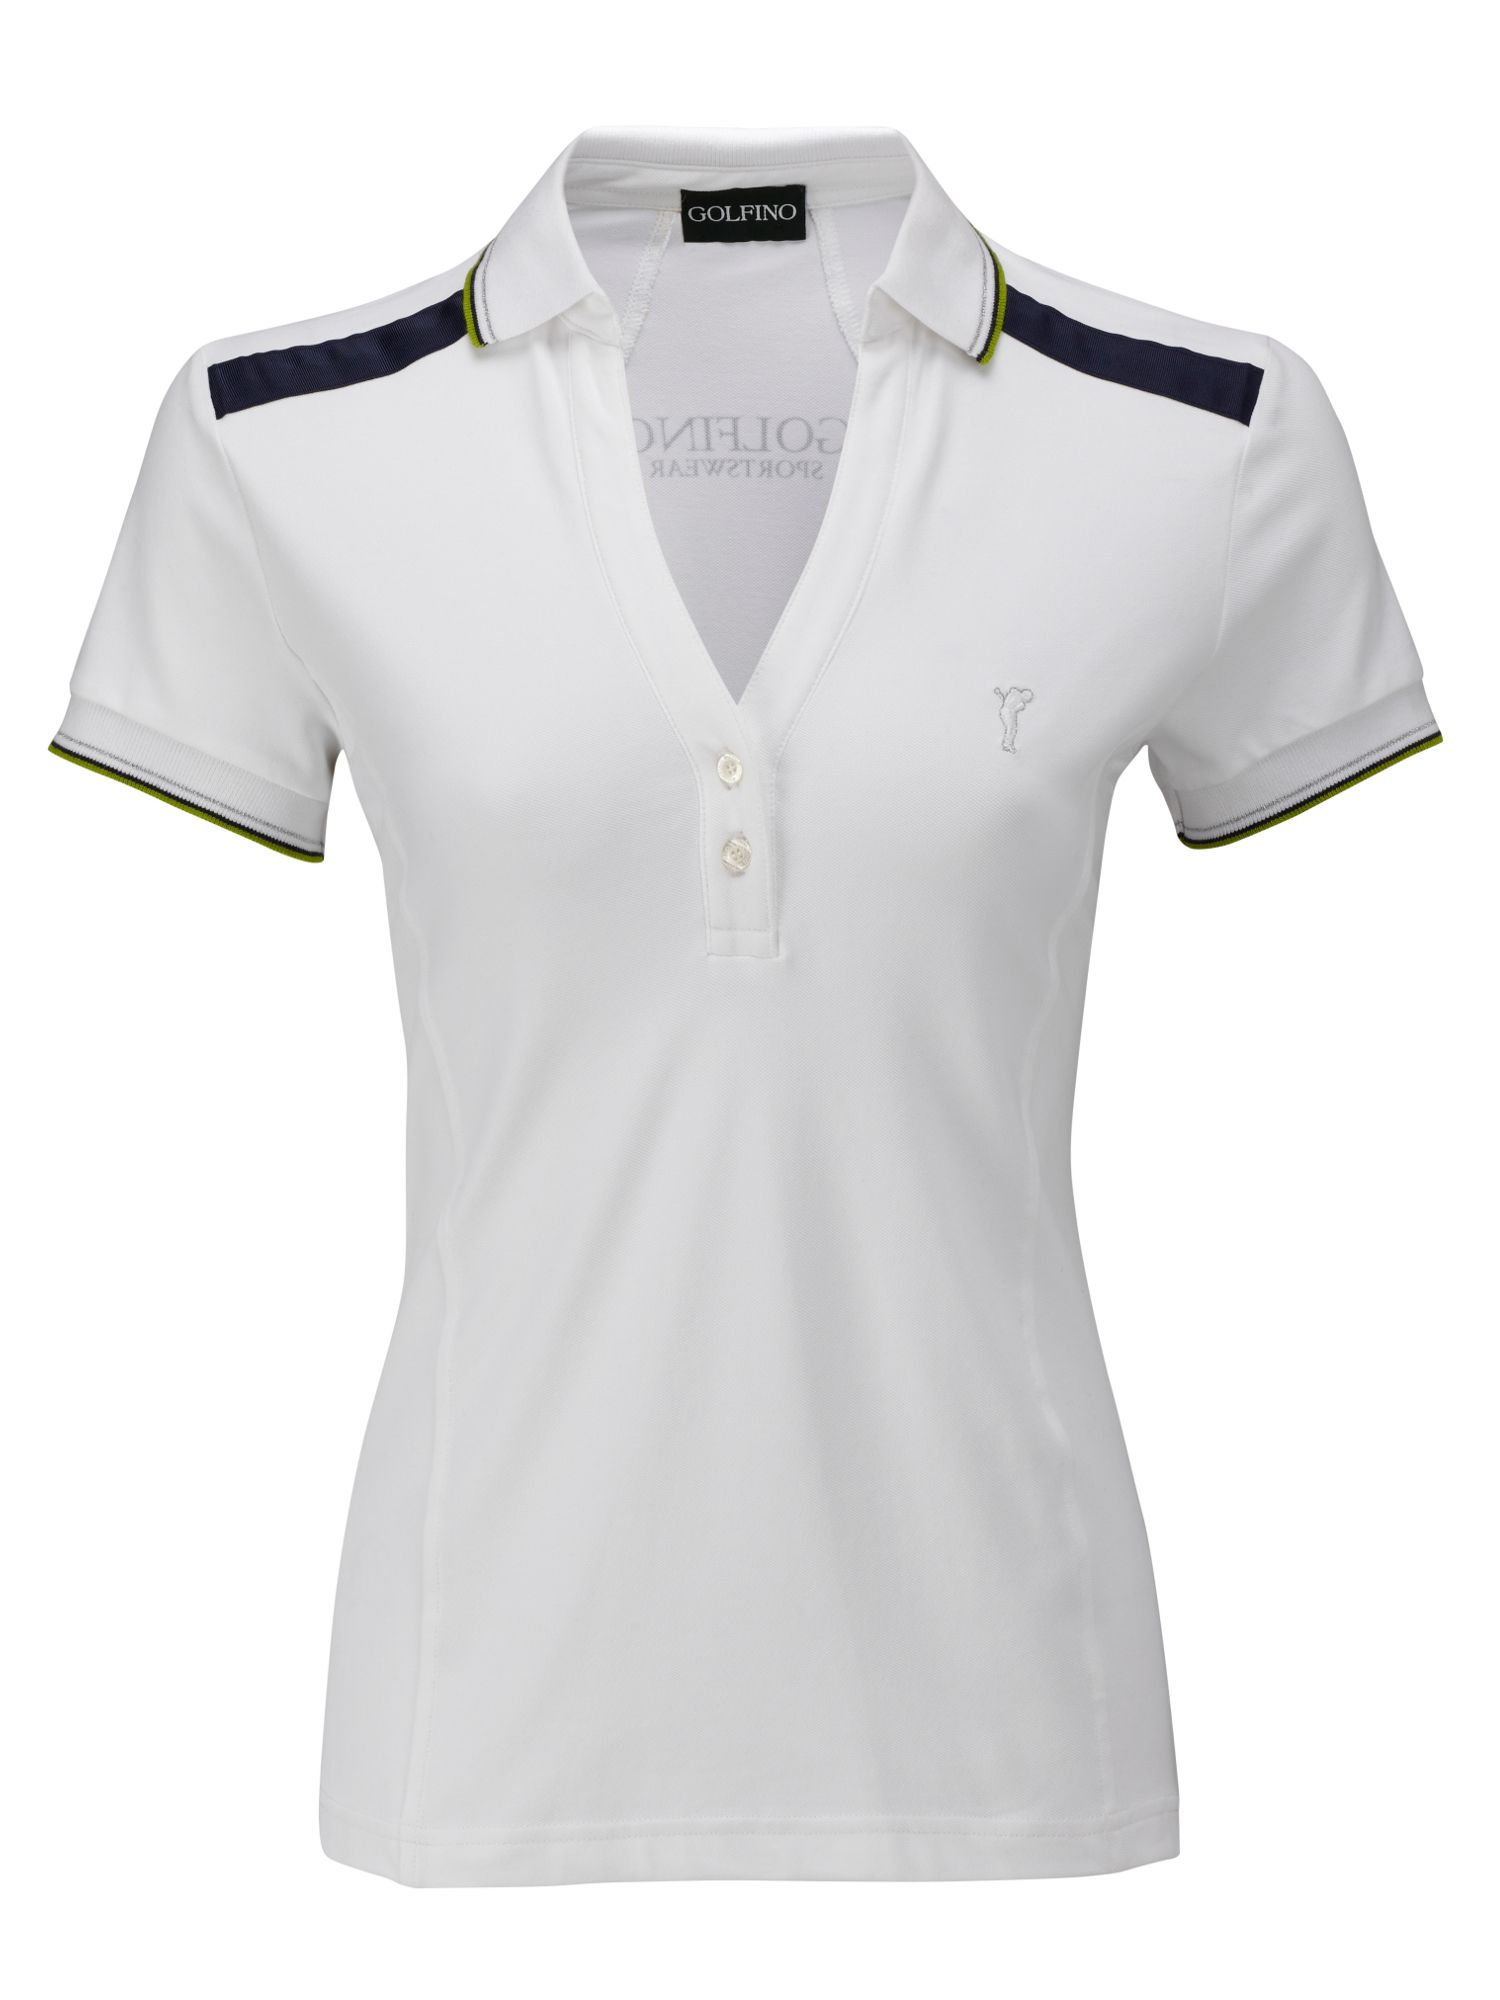 Uv protection plain pique polo